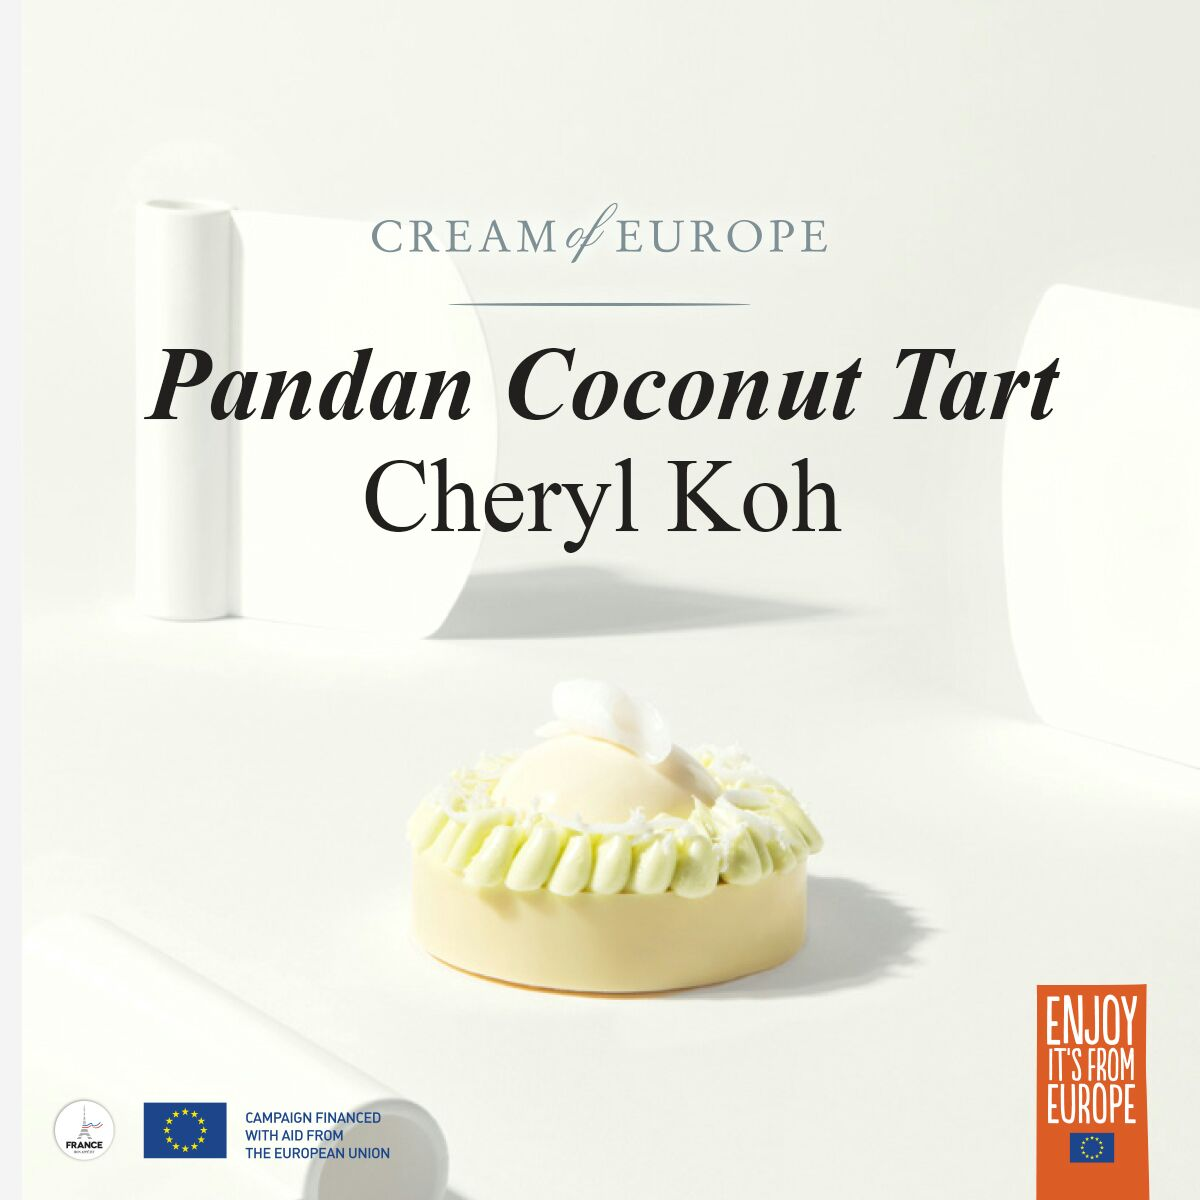 Pandan Coconut Tart, Recipe by Cheryl Koh for Cream of Europe